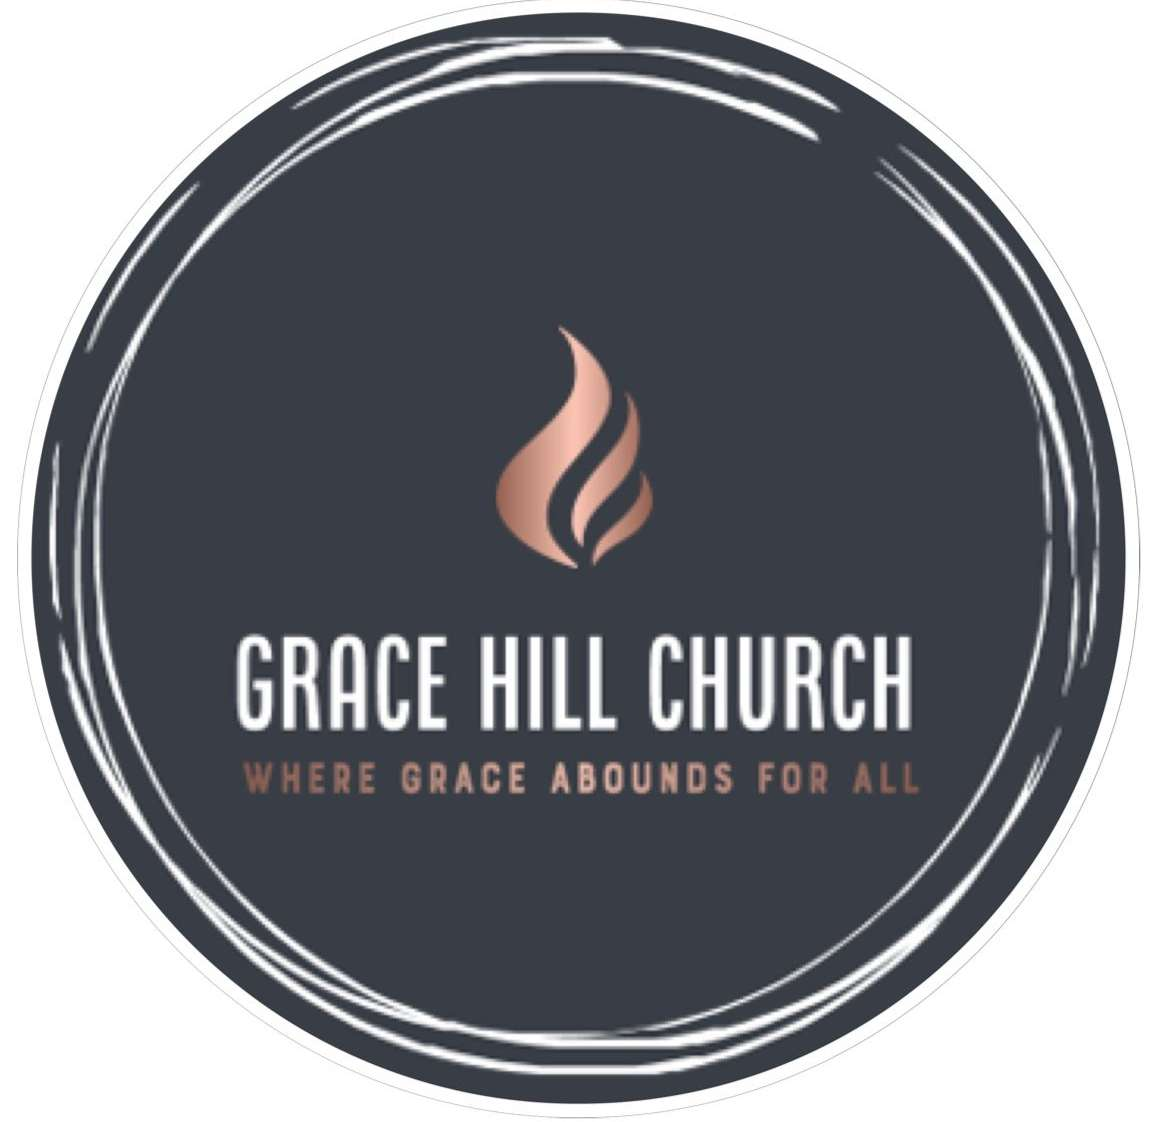 Grace Hill Church